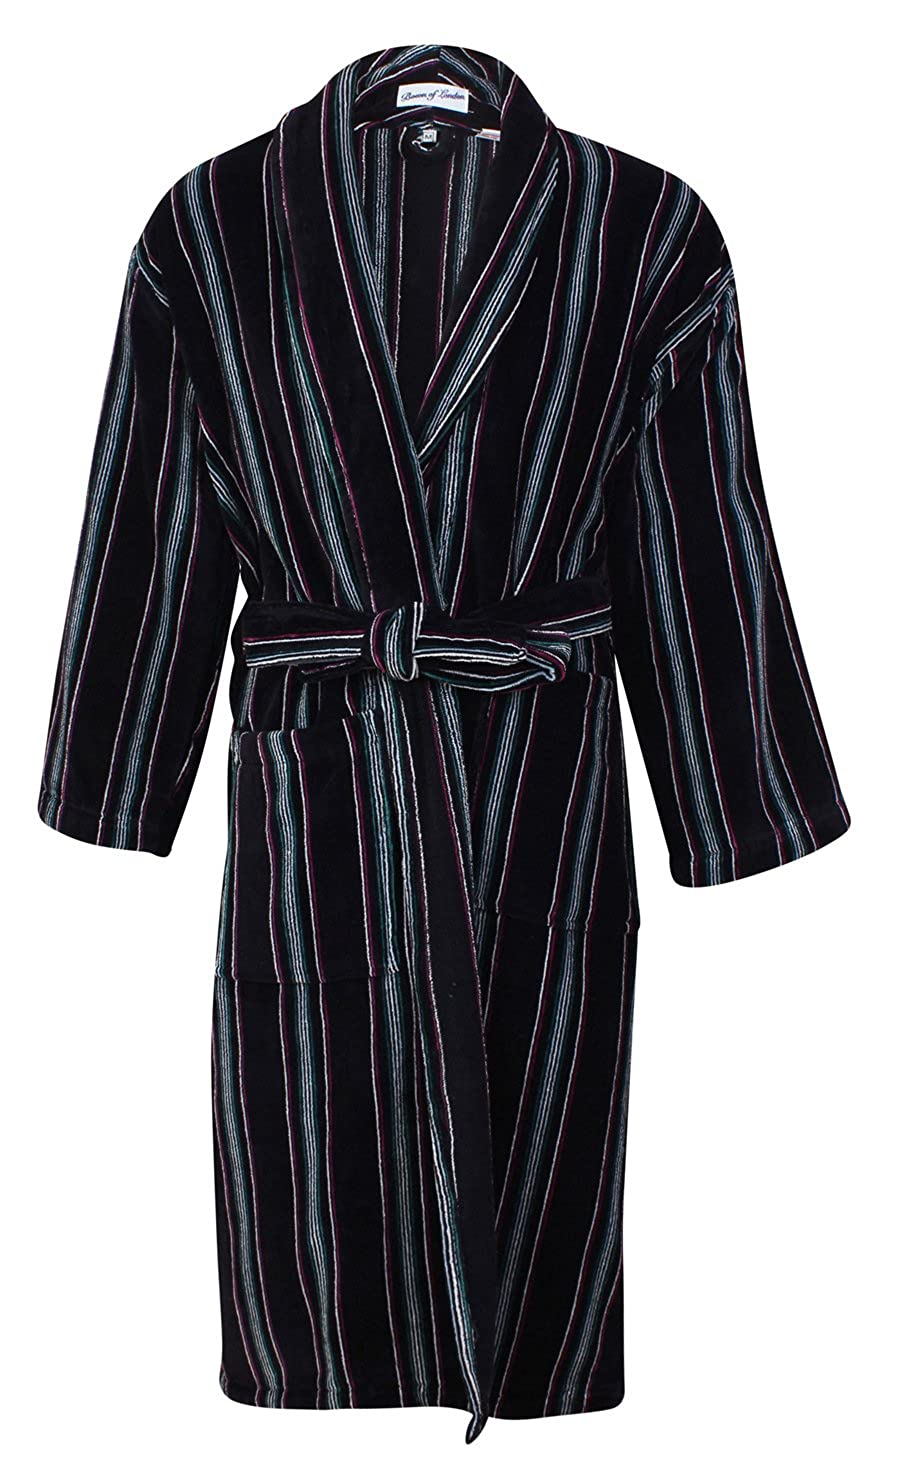 Bown of London Men's Luxury Velour Dressing Gown, Brixham, Black with Fine Stripes